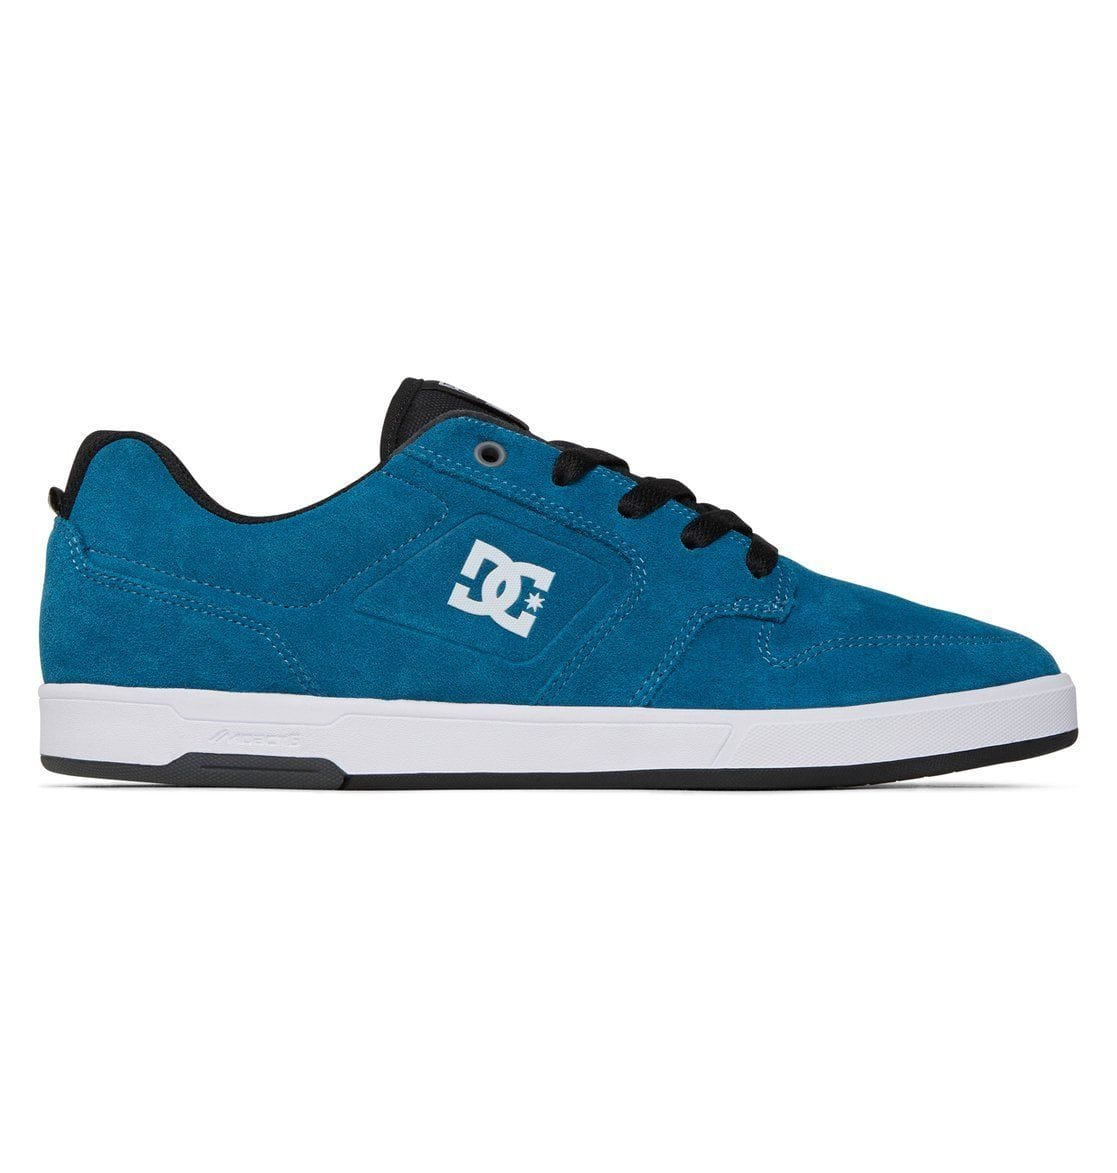 DC Shoes and Apparel for the Family  $1 each + $4 Shipping